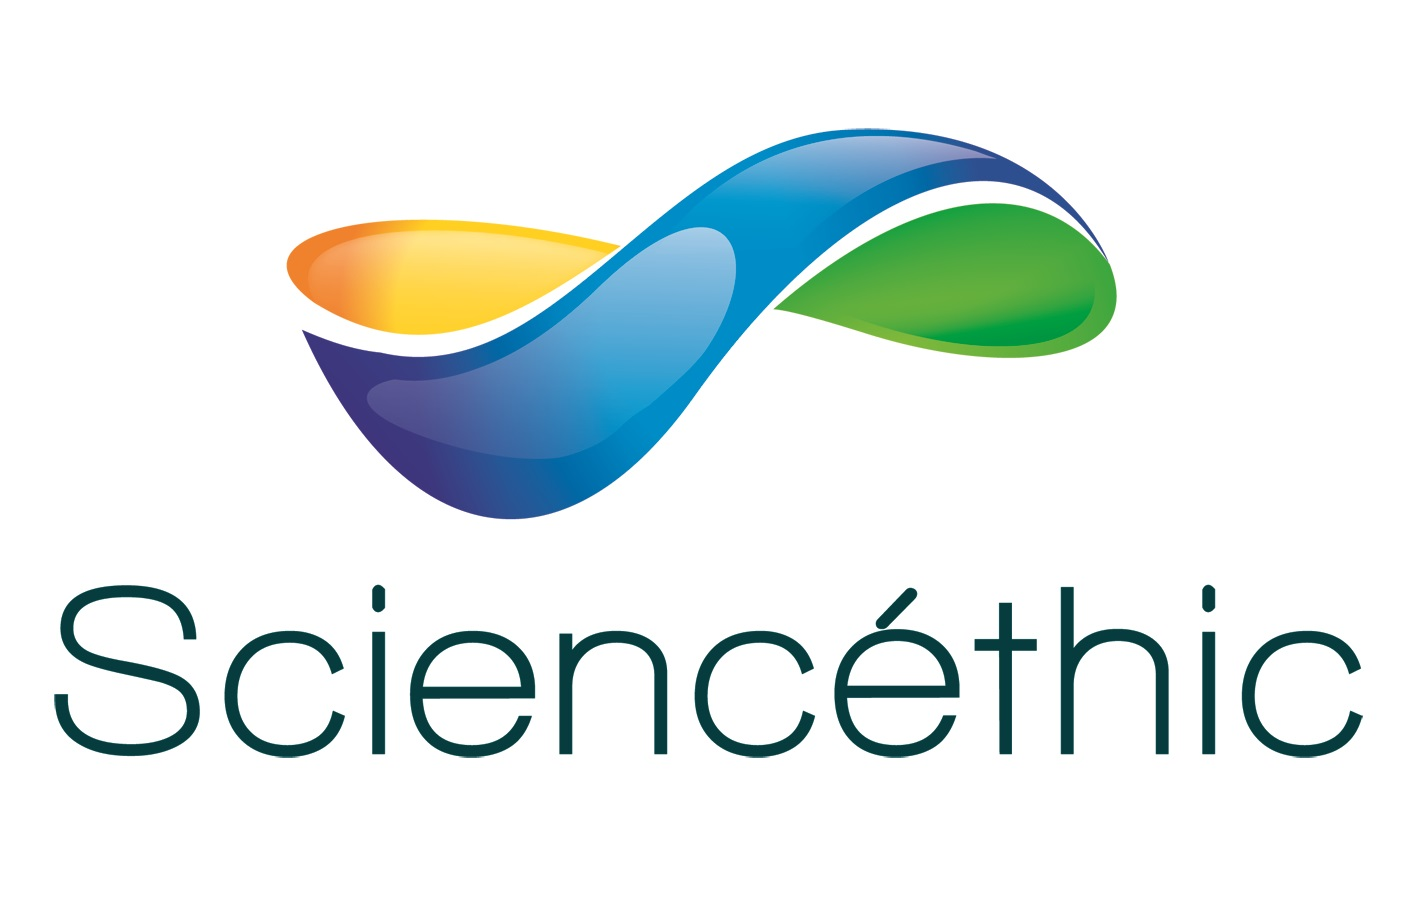 LOGO_Sciencethic